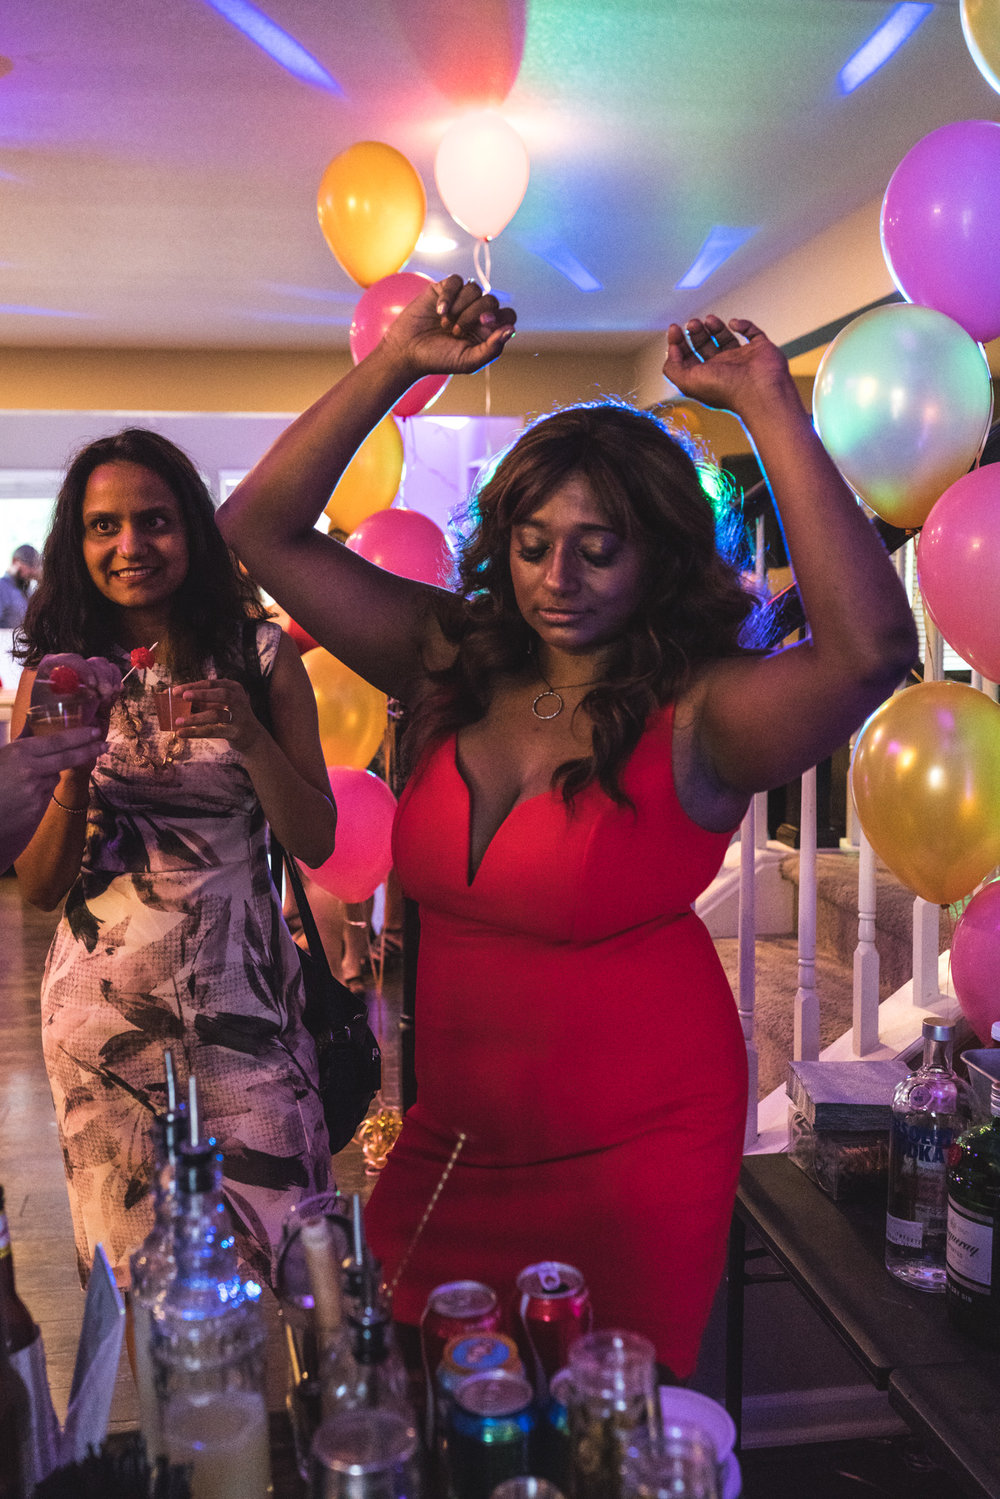 Woman in a bright red dress puts her hands in the air as she dances in a room decorated with bright colored lights and balloons